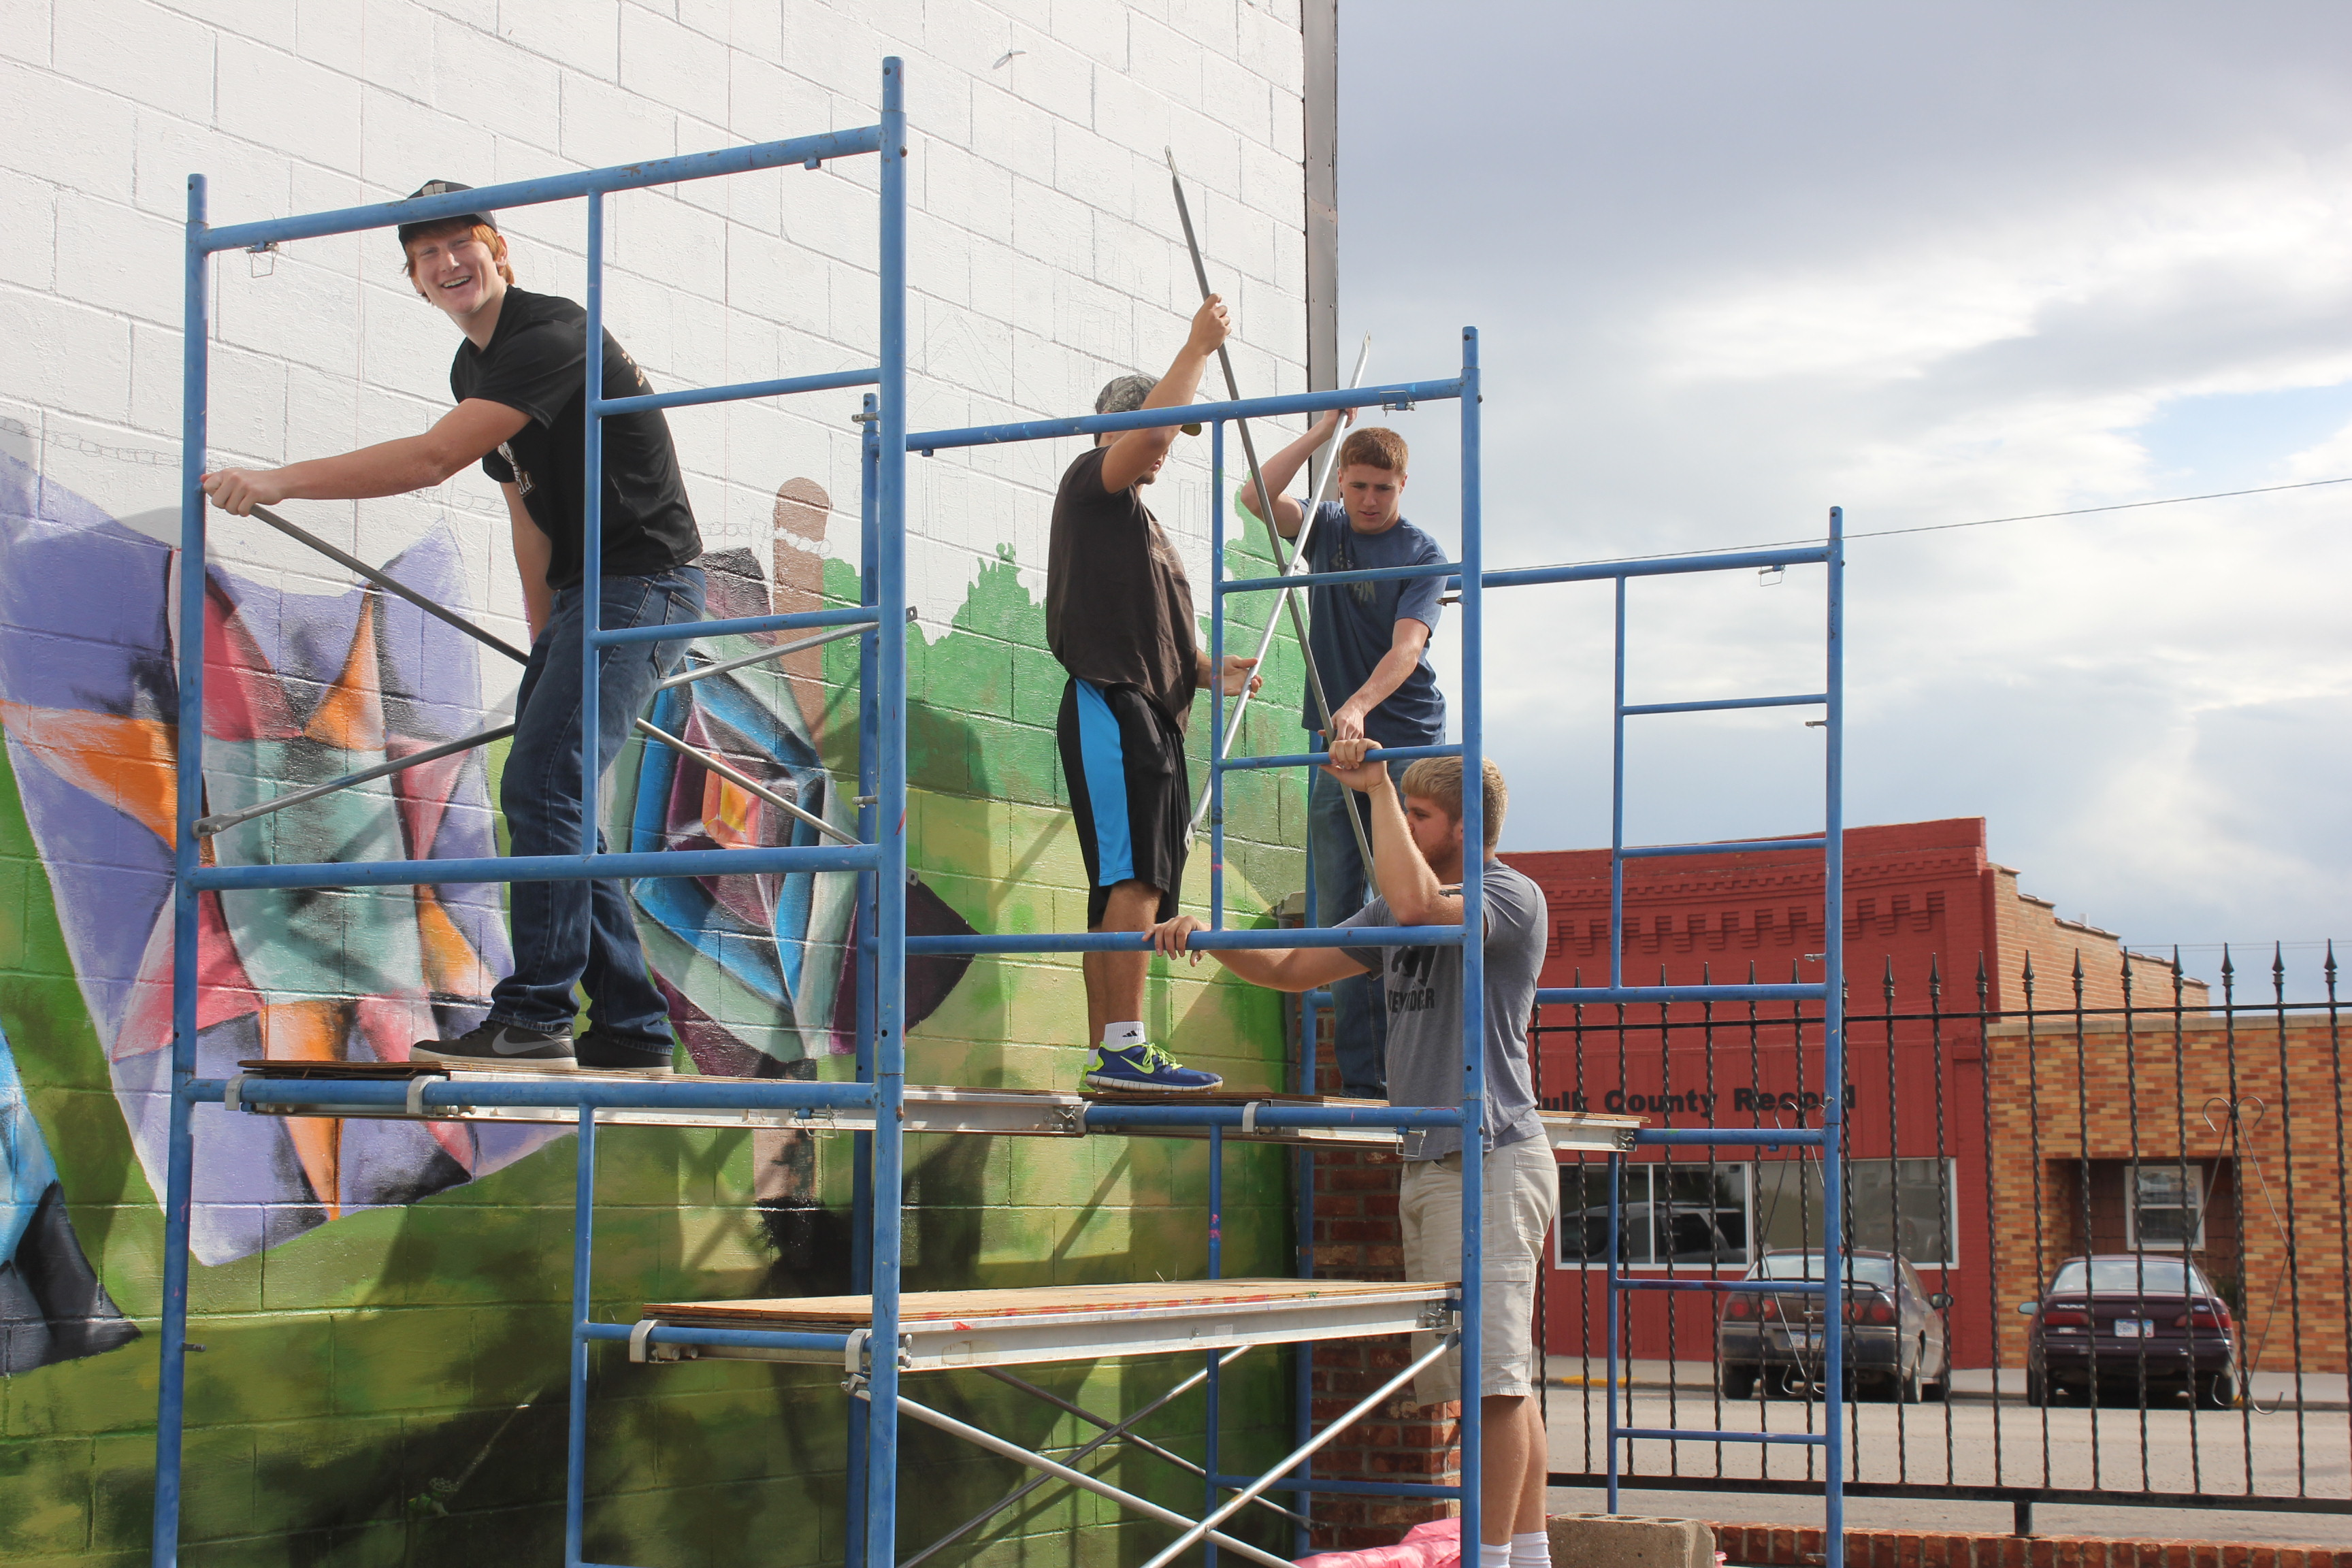 Image of young boys painting a brick exterior wall on a downtown main street. Four young men are standing on a scaffolding - one faces the camera while painting, two work with large rollers to get more paint, and one stands at the far end of the scaffold.